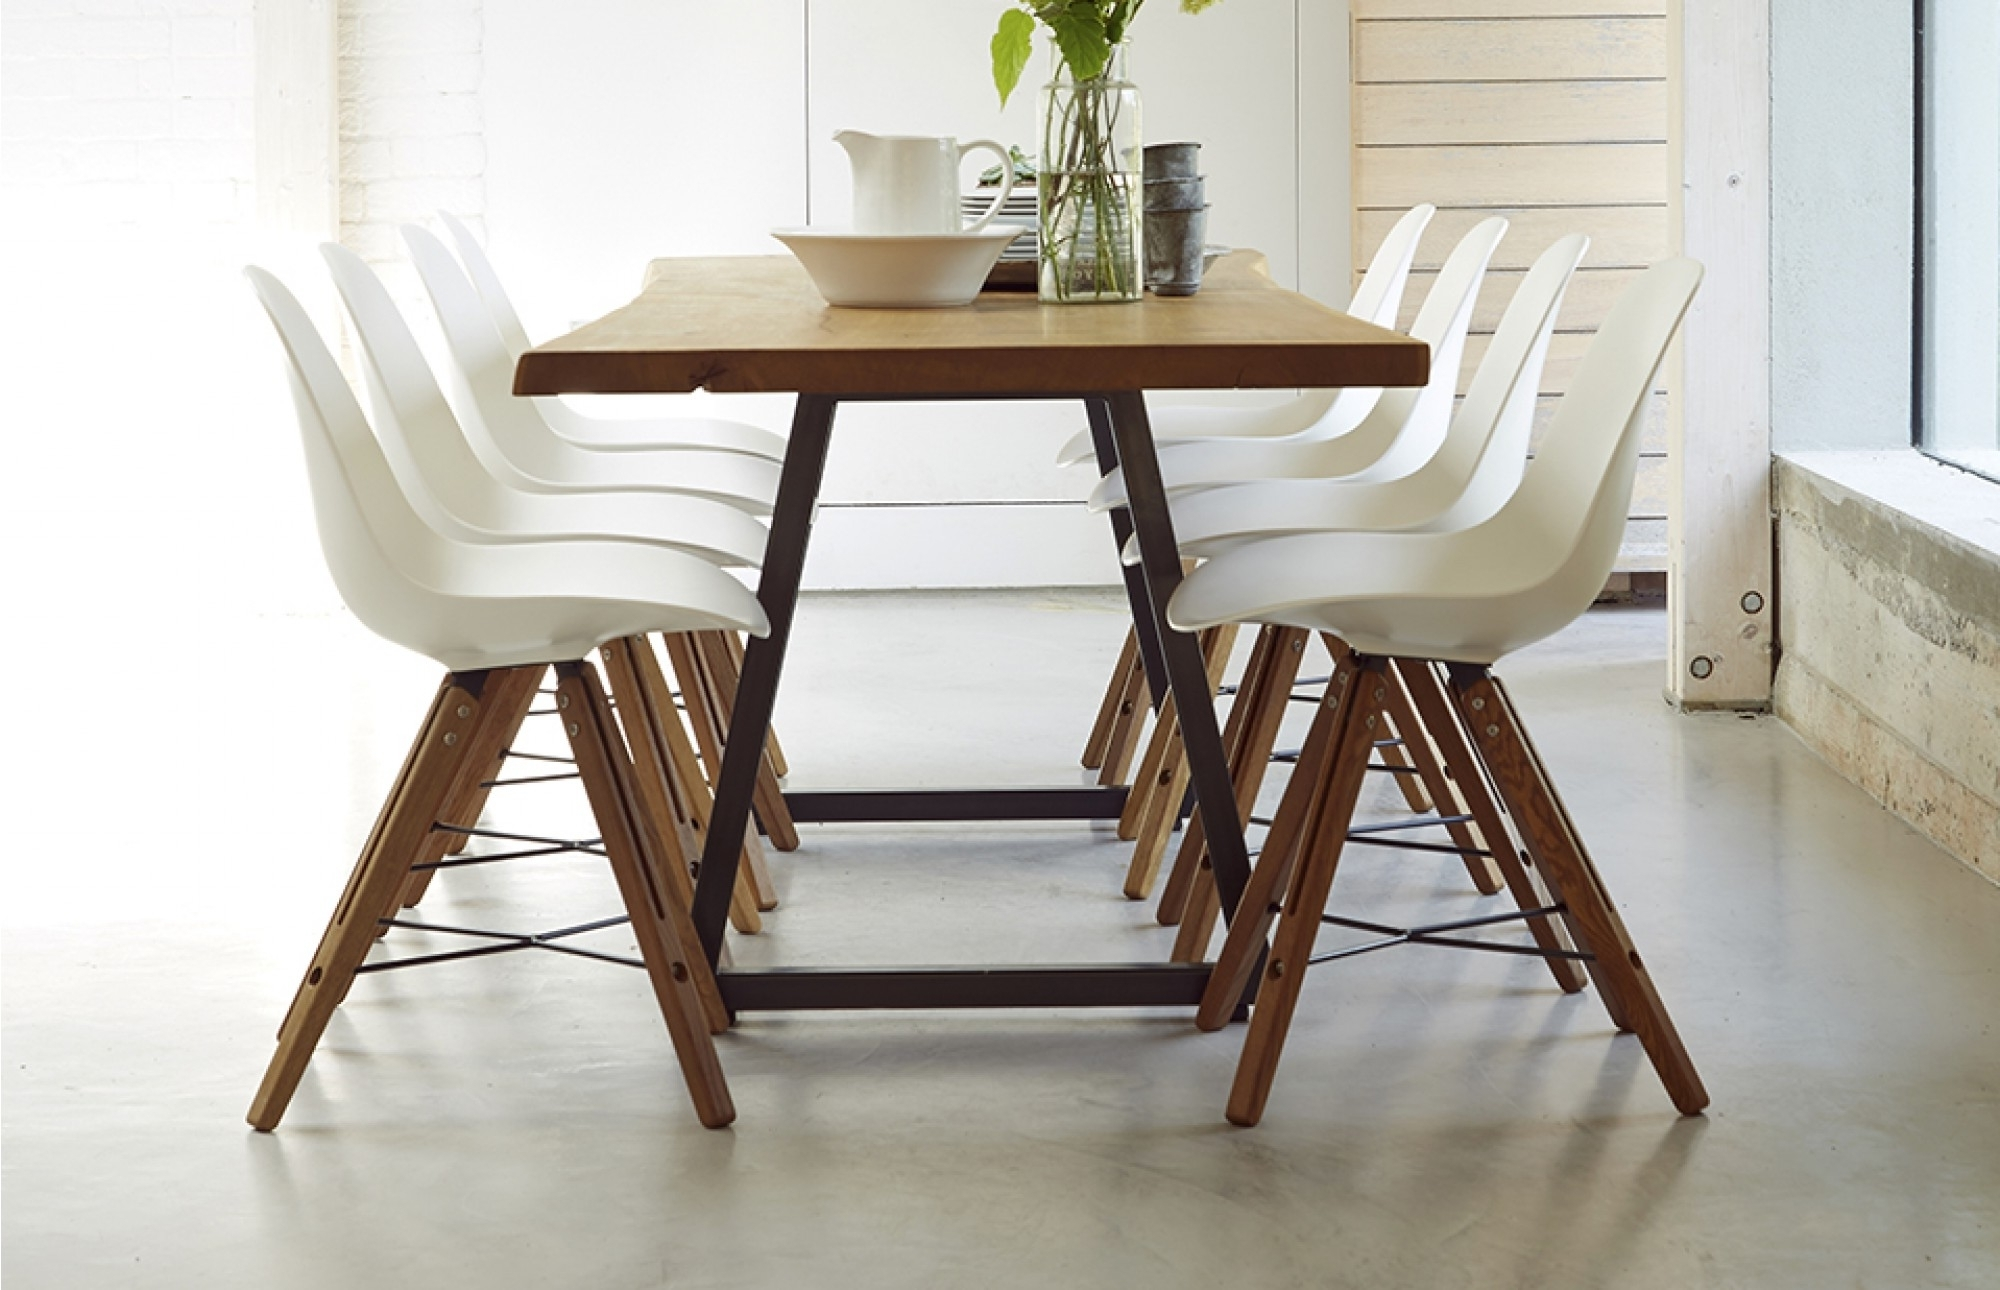 Cool Modern Dining Tables 9 Square Table Extendable Seats – layjao